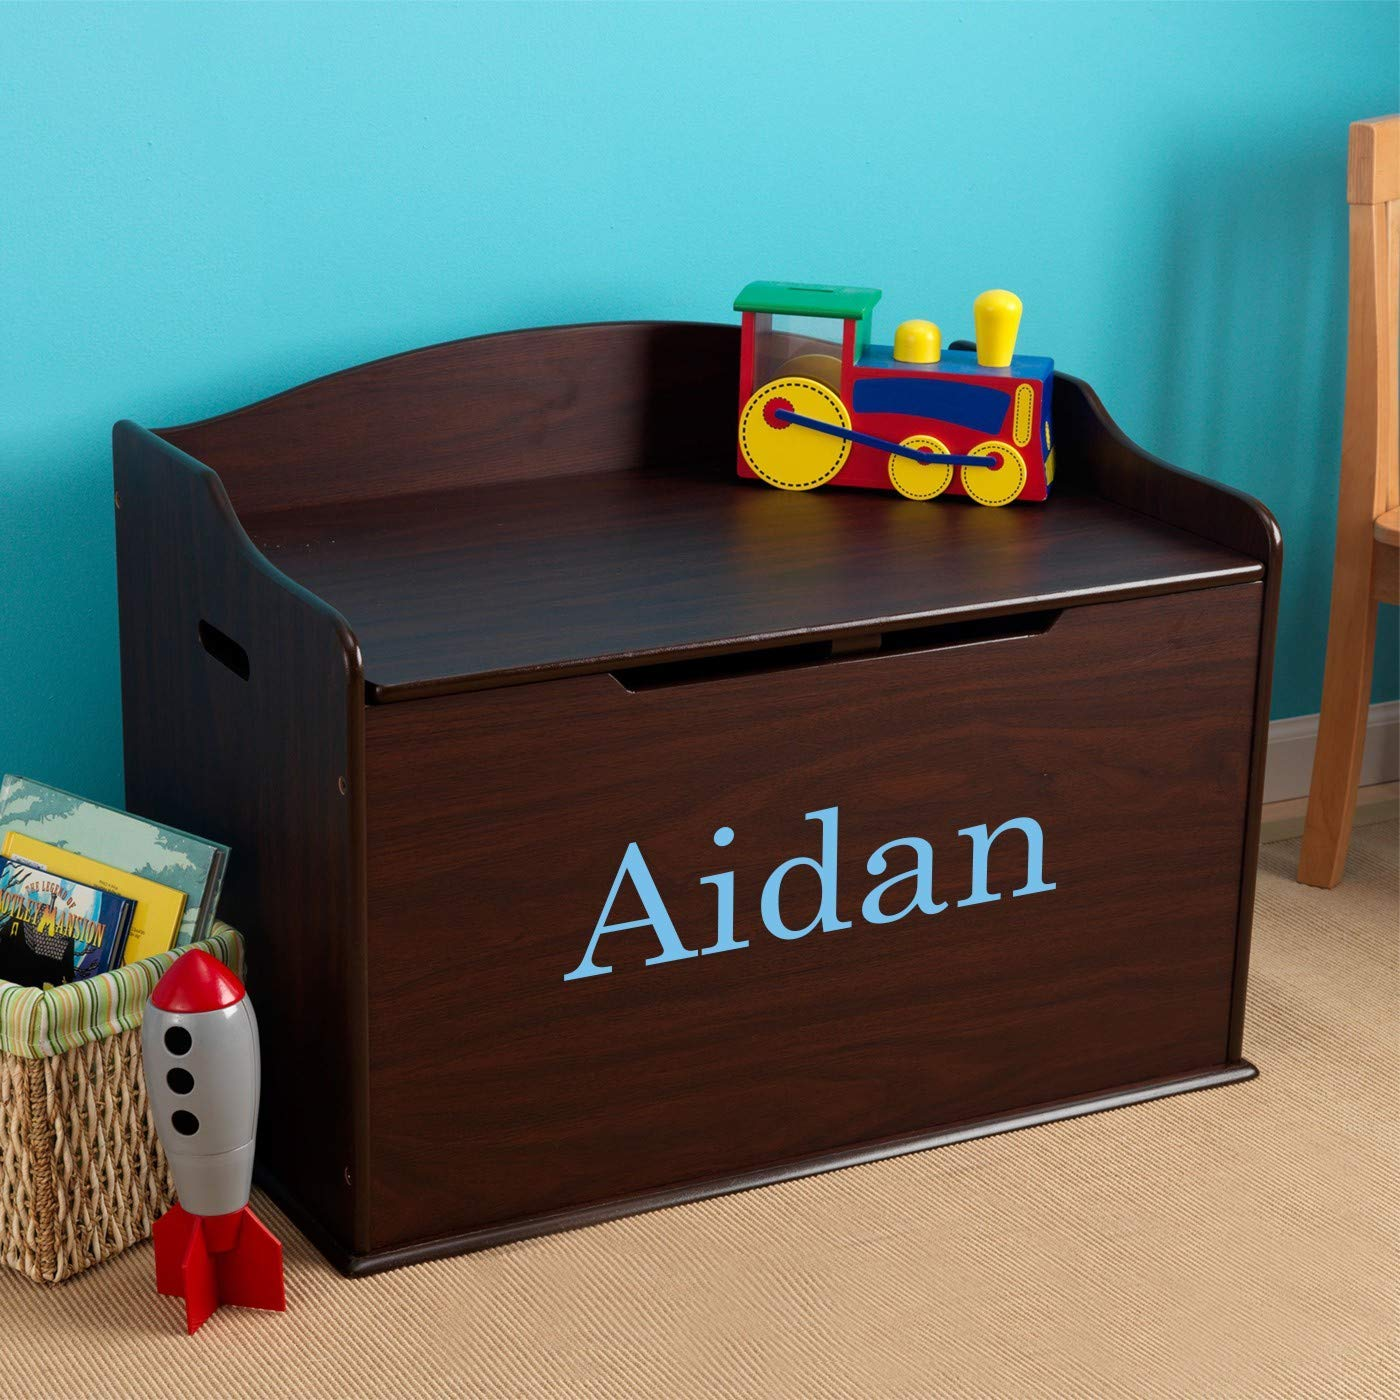 DIBSIES Personalization Station Replacement Front Panel for Espresso Modern Touch Toy Box (Aidan in Baby Blue Library Font)